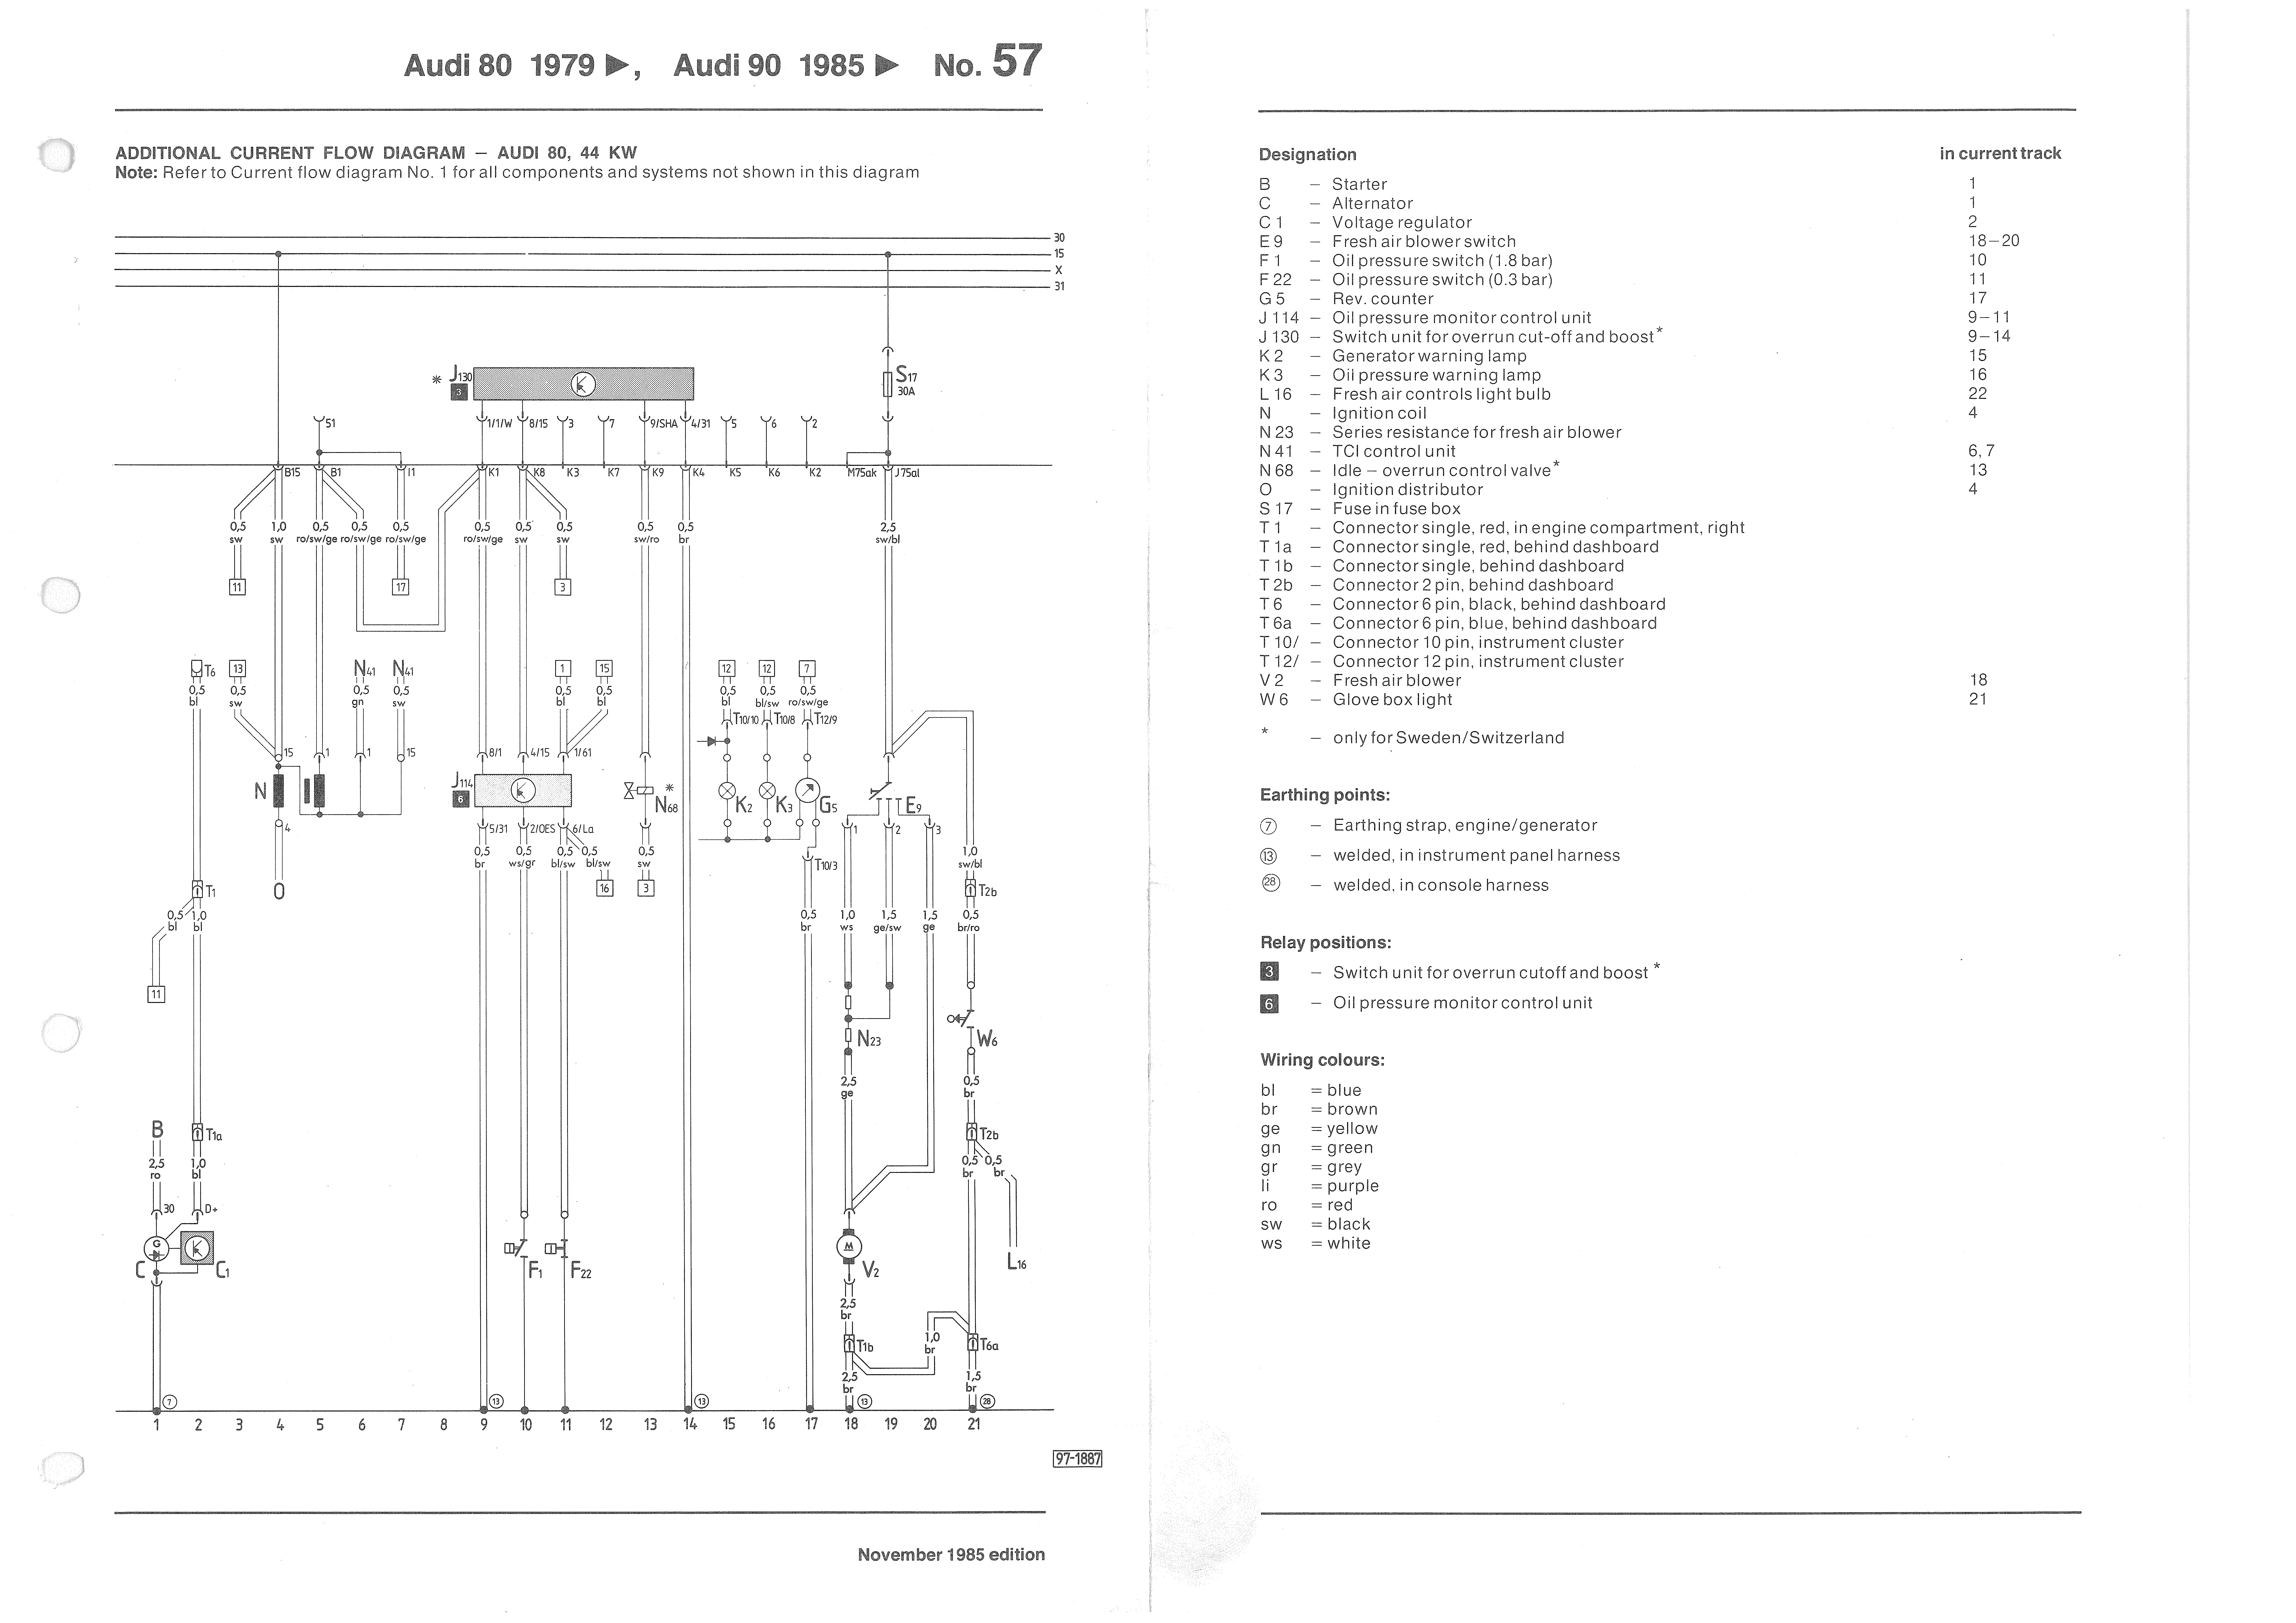 Wiring Diagrams for the B2 Type 85 Audi Coupe, GT and